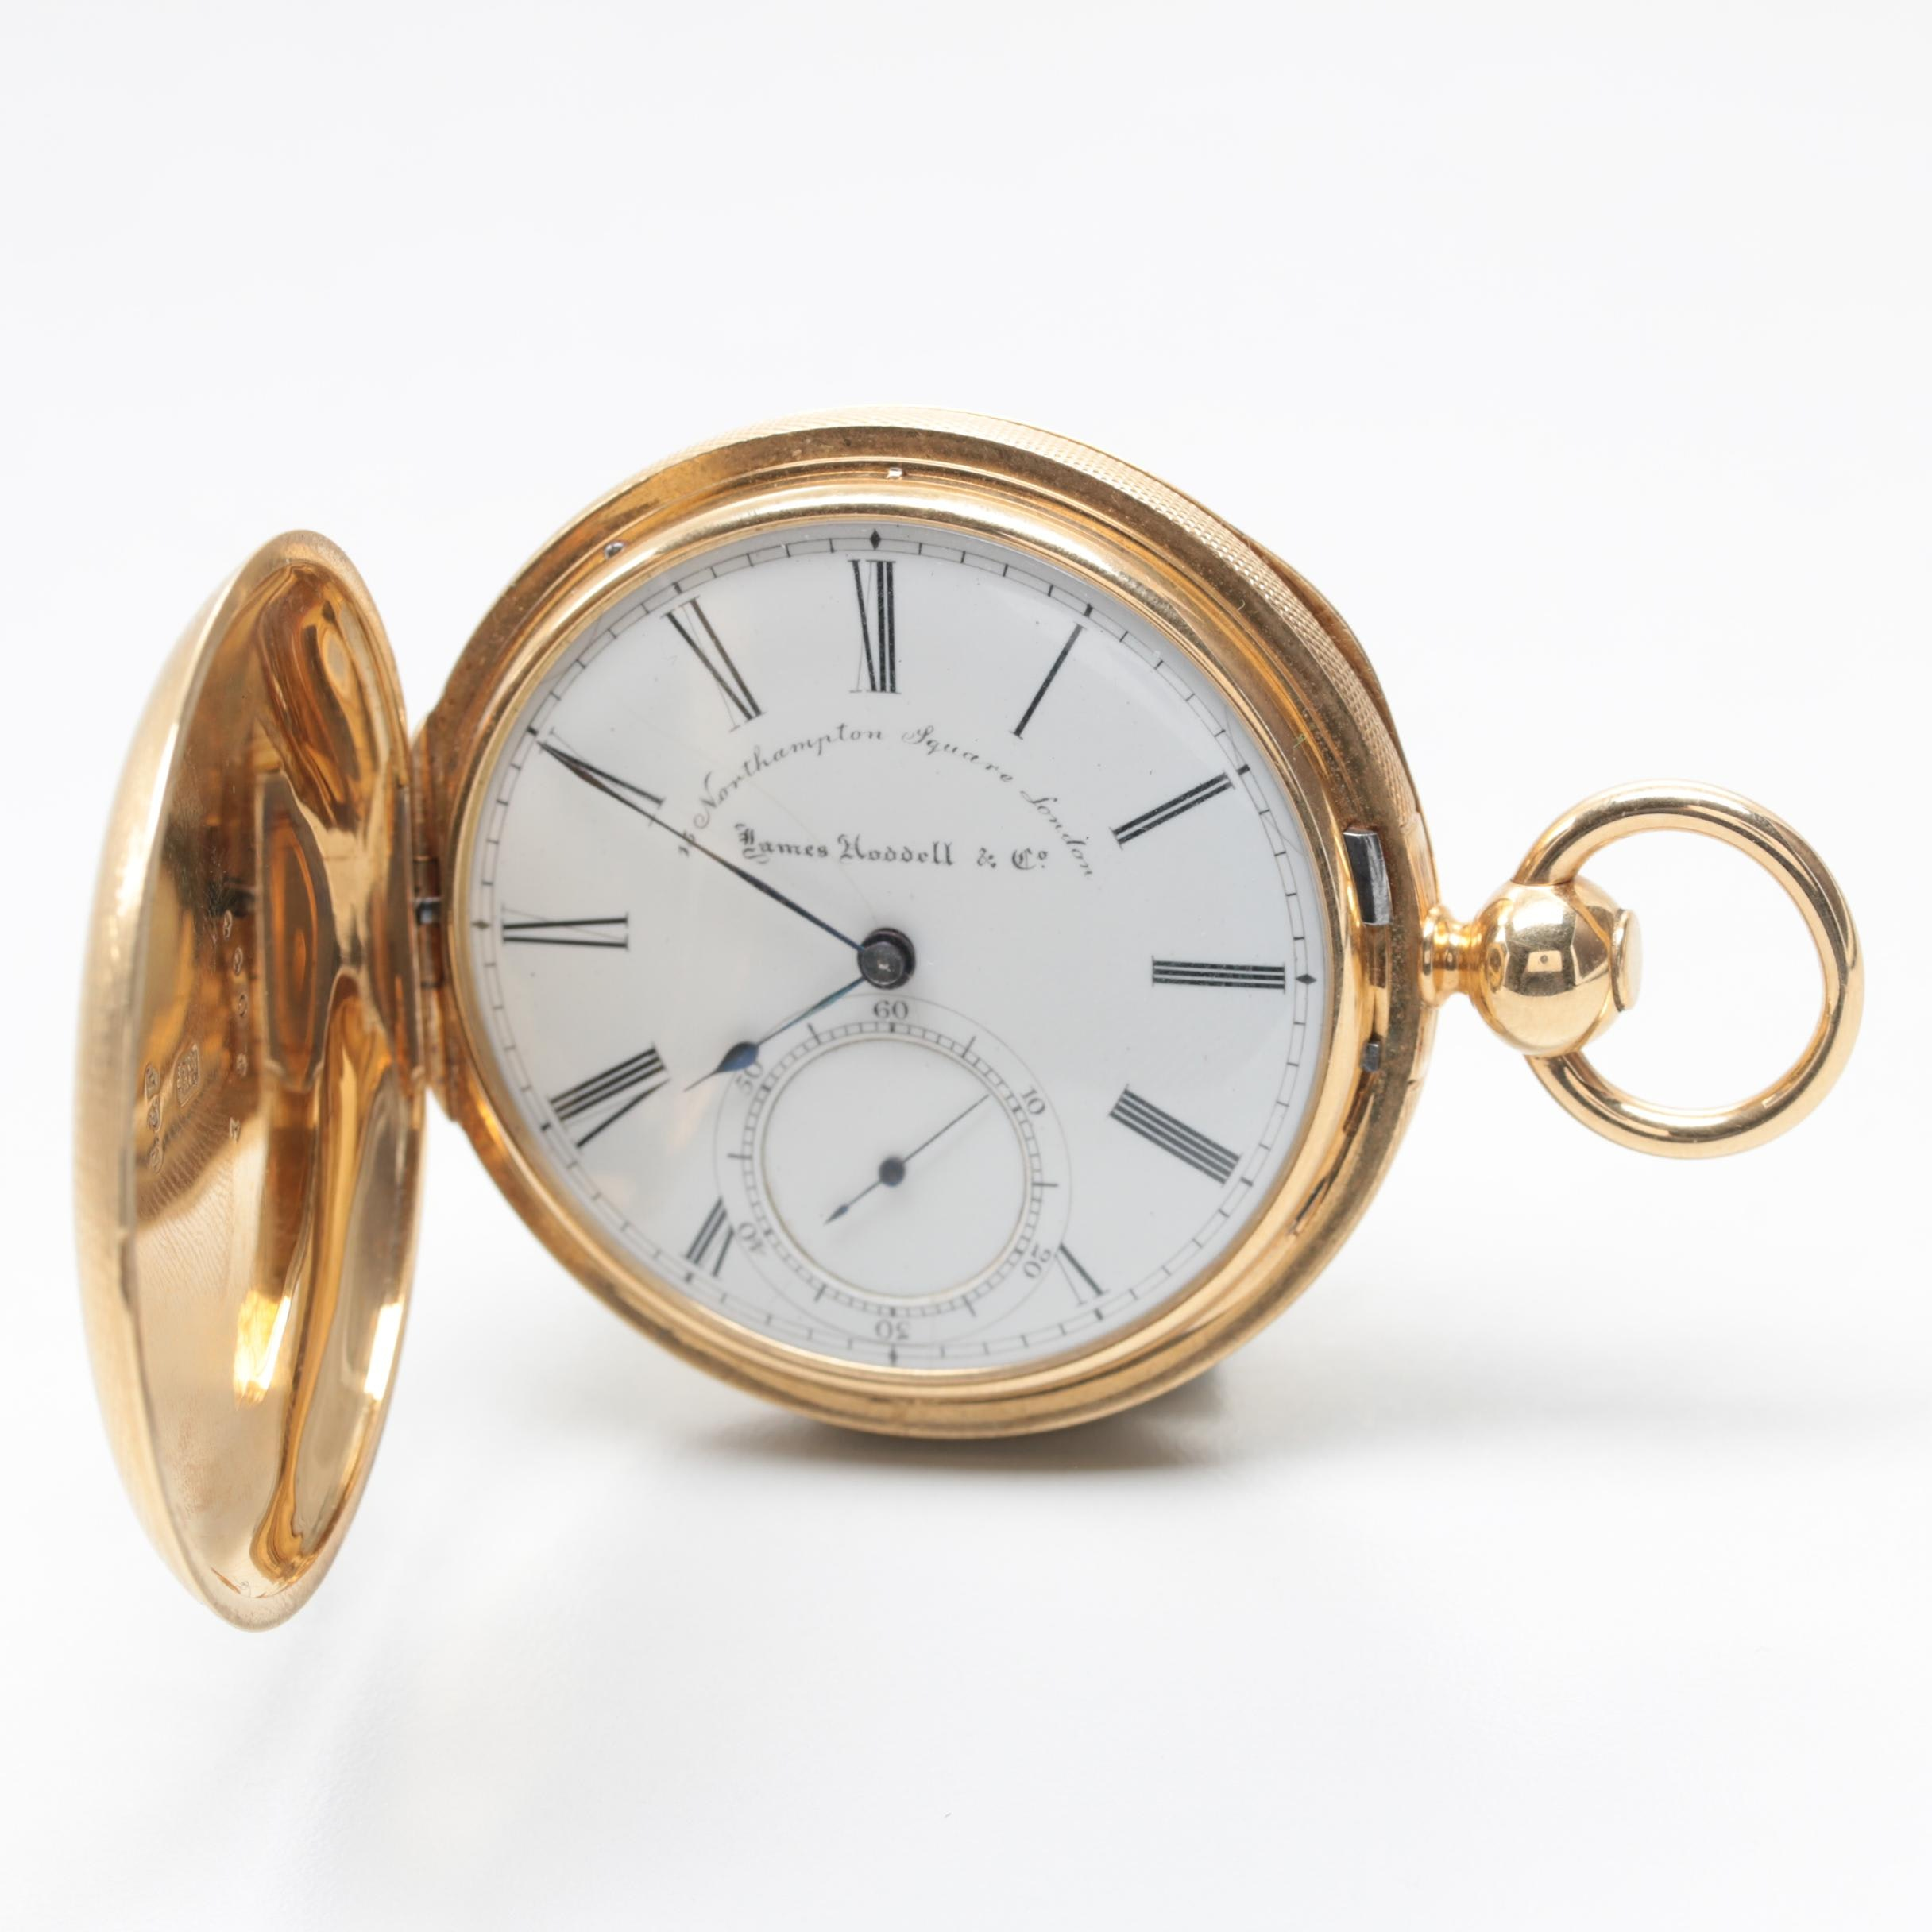 James Hoddell & Co. 18K Yellow Gold Hunter Case Pocket Watch